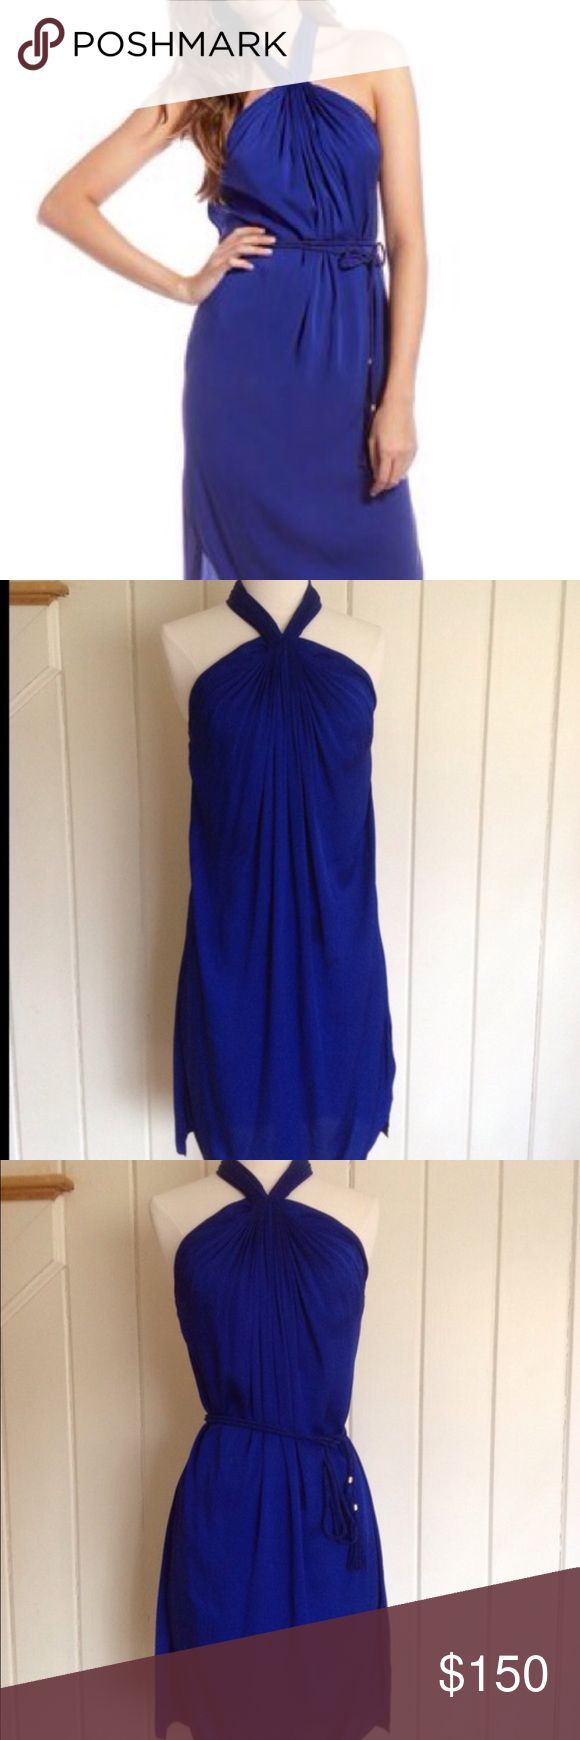 DVF silk Alyssa halter dress Absolutely stunning cobalt super soft 100% silk DVF dress. Can be word with or without the waist tie (which it comes with). Once again another dress I bought for an occasion but didn't wear. You might say I have a shopping problem but I just really like DVF 👗 Diane von Furstenberg Dresses Midi